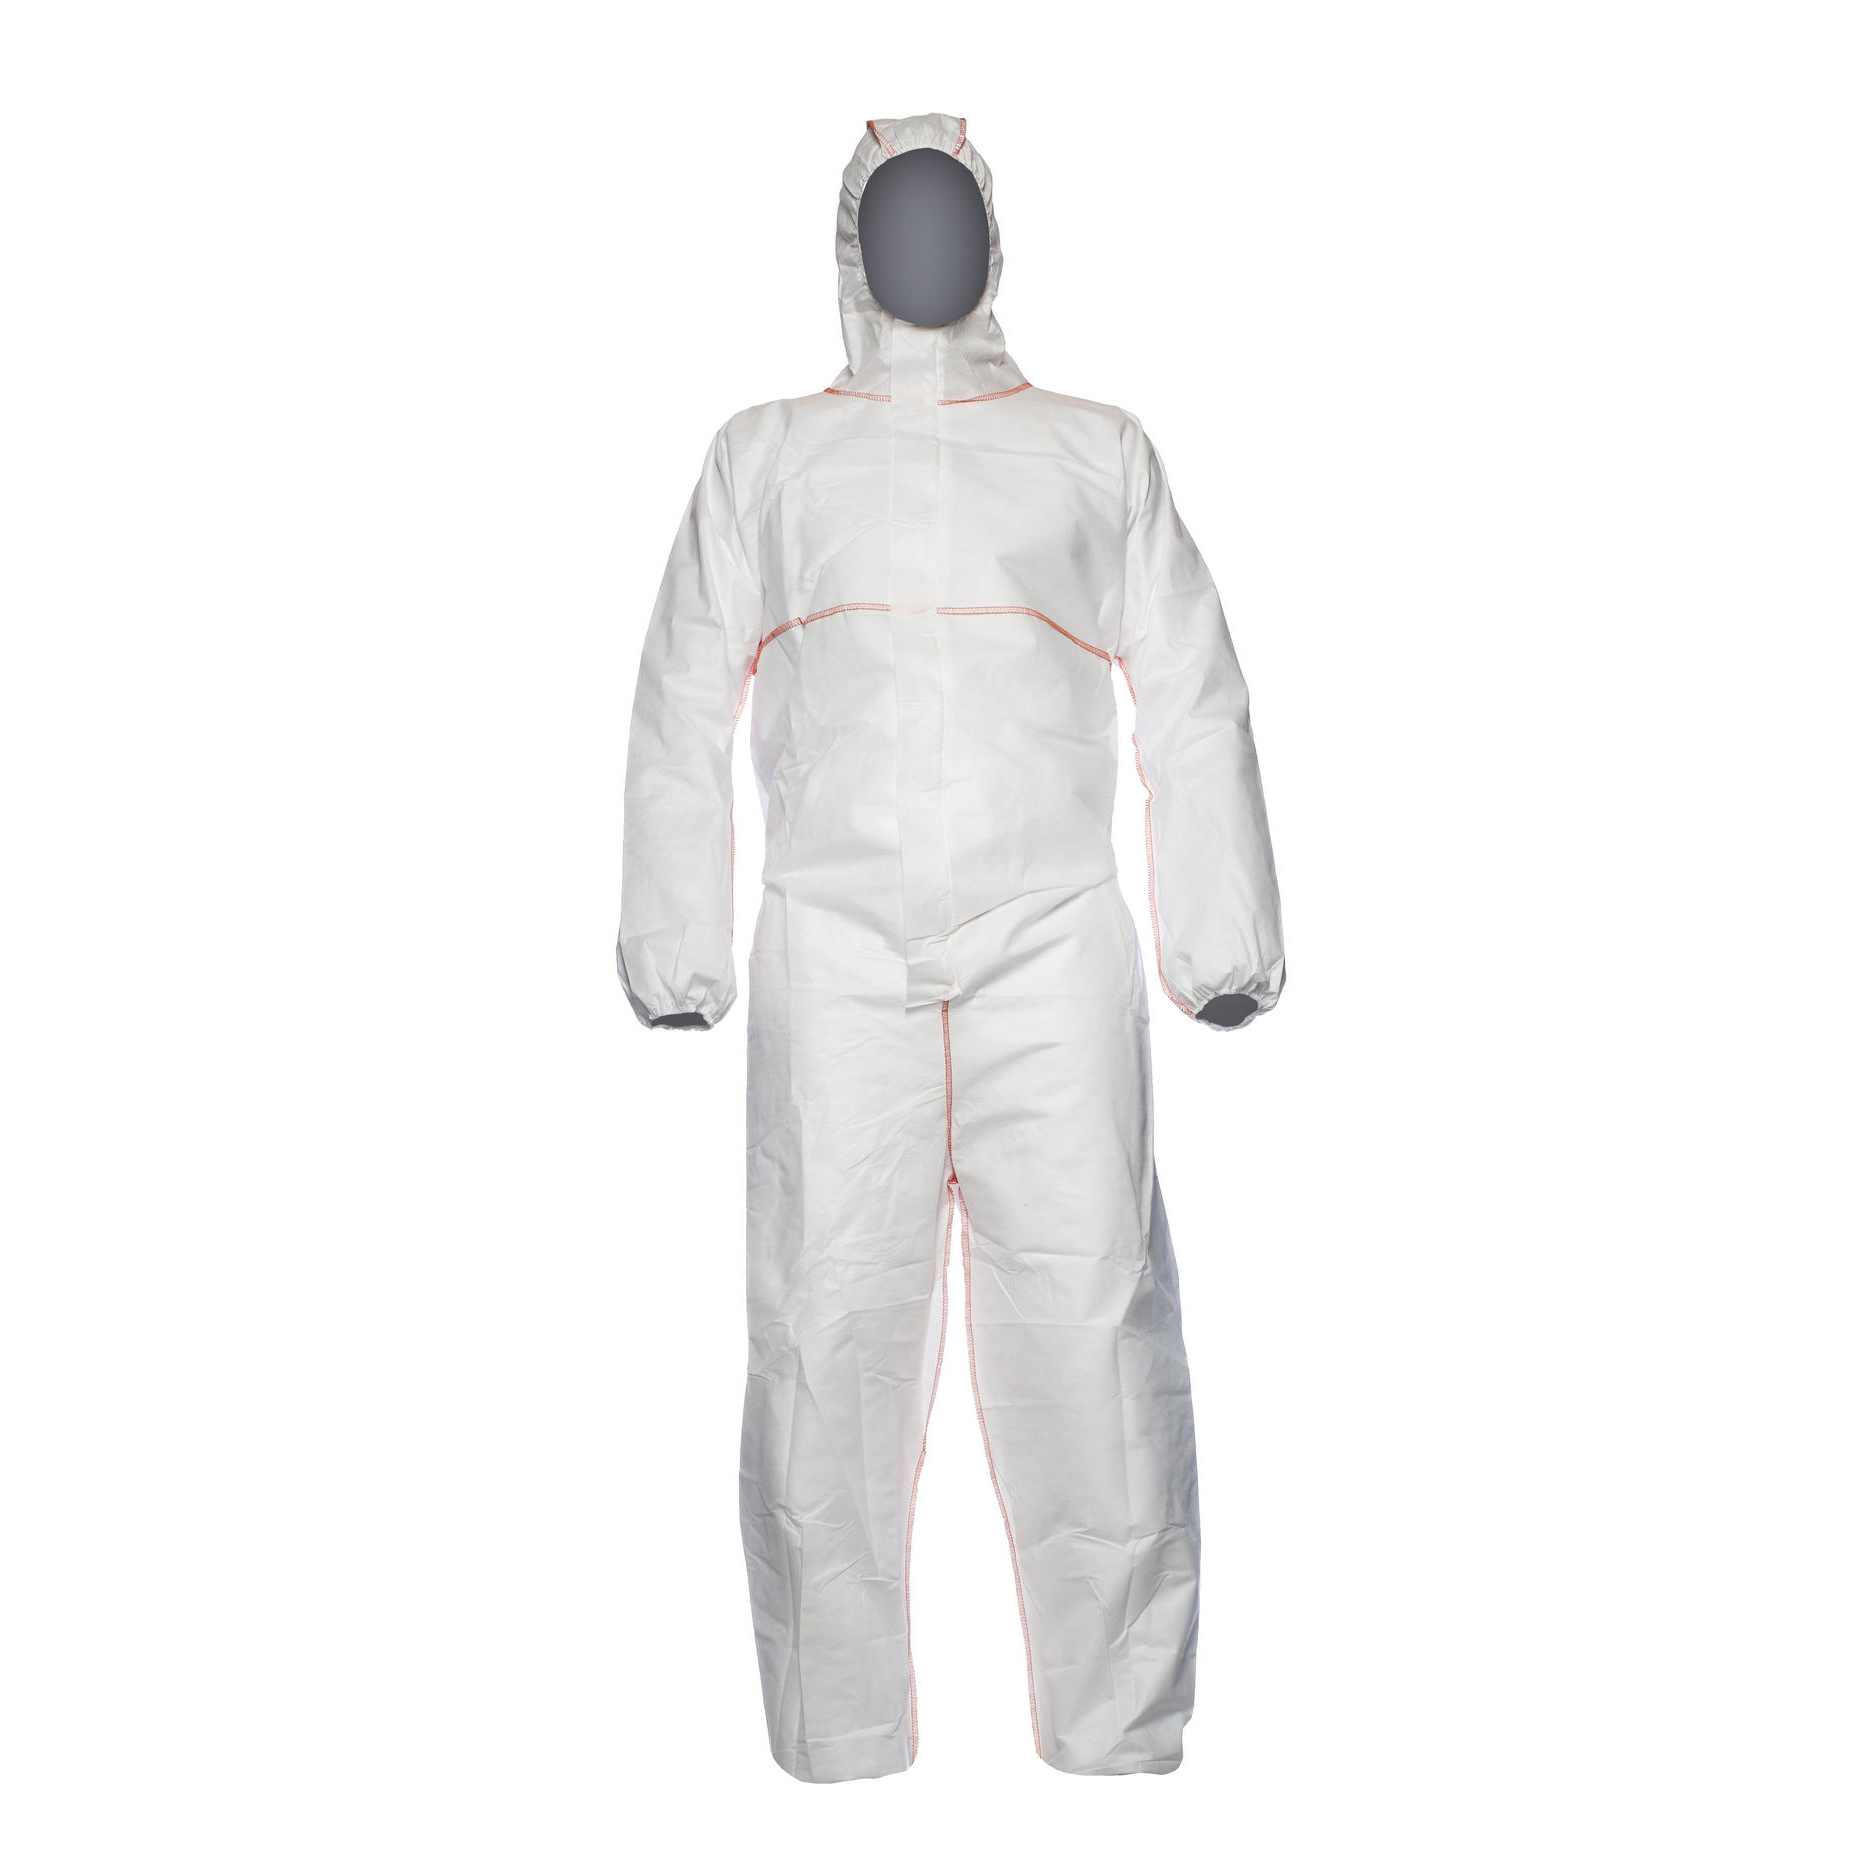 Proshield Fire Resistant Coveralls White M Ref PROFRM Up to 3 Day Leadtime